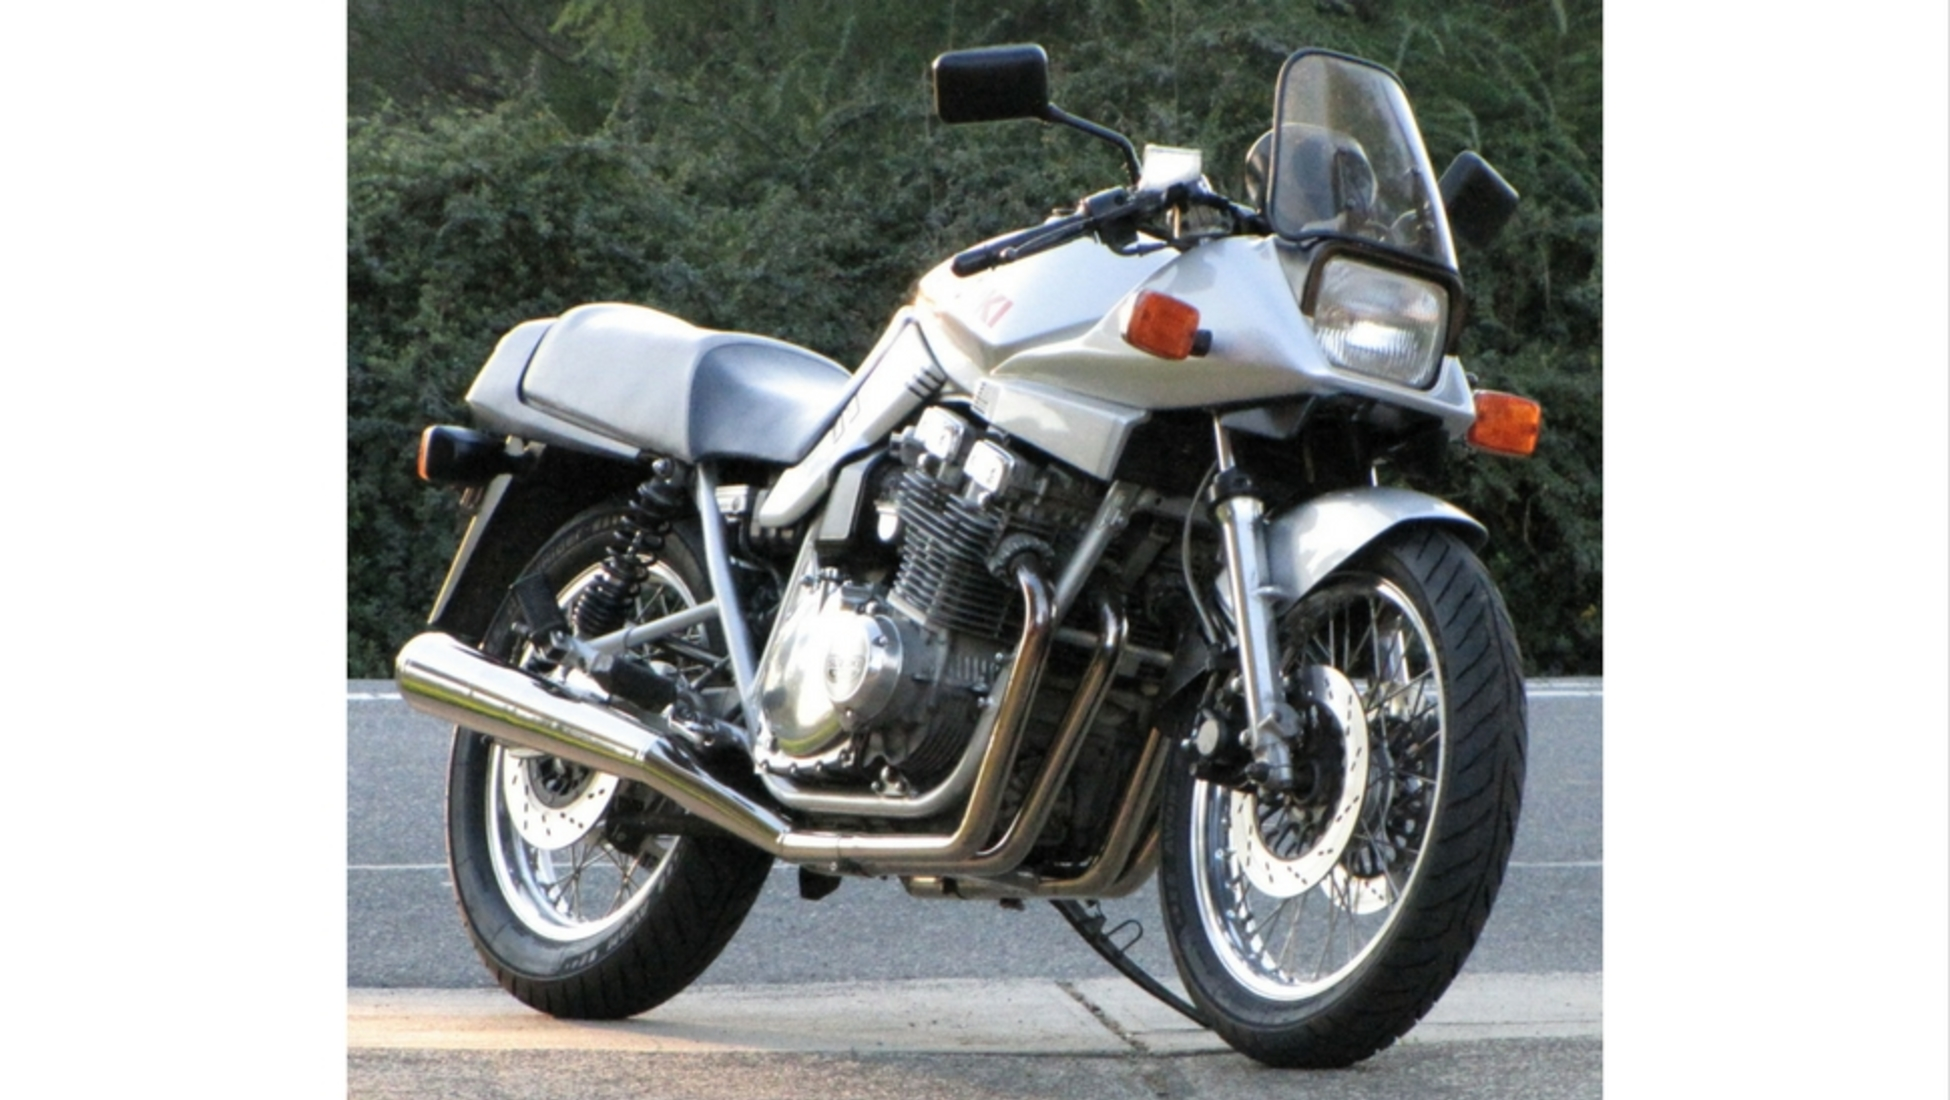 9 Soon To Be Classic Motorcycles Our Experts Advise Invest In 1960s Honda There Were Various Versions Of The Katana But 1100 Remains Most Evocative Model Suzuki Built Other Same Style With Name